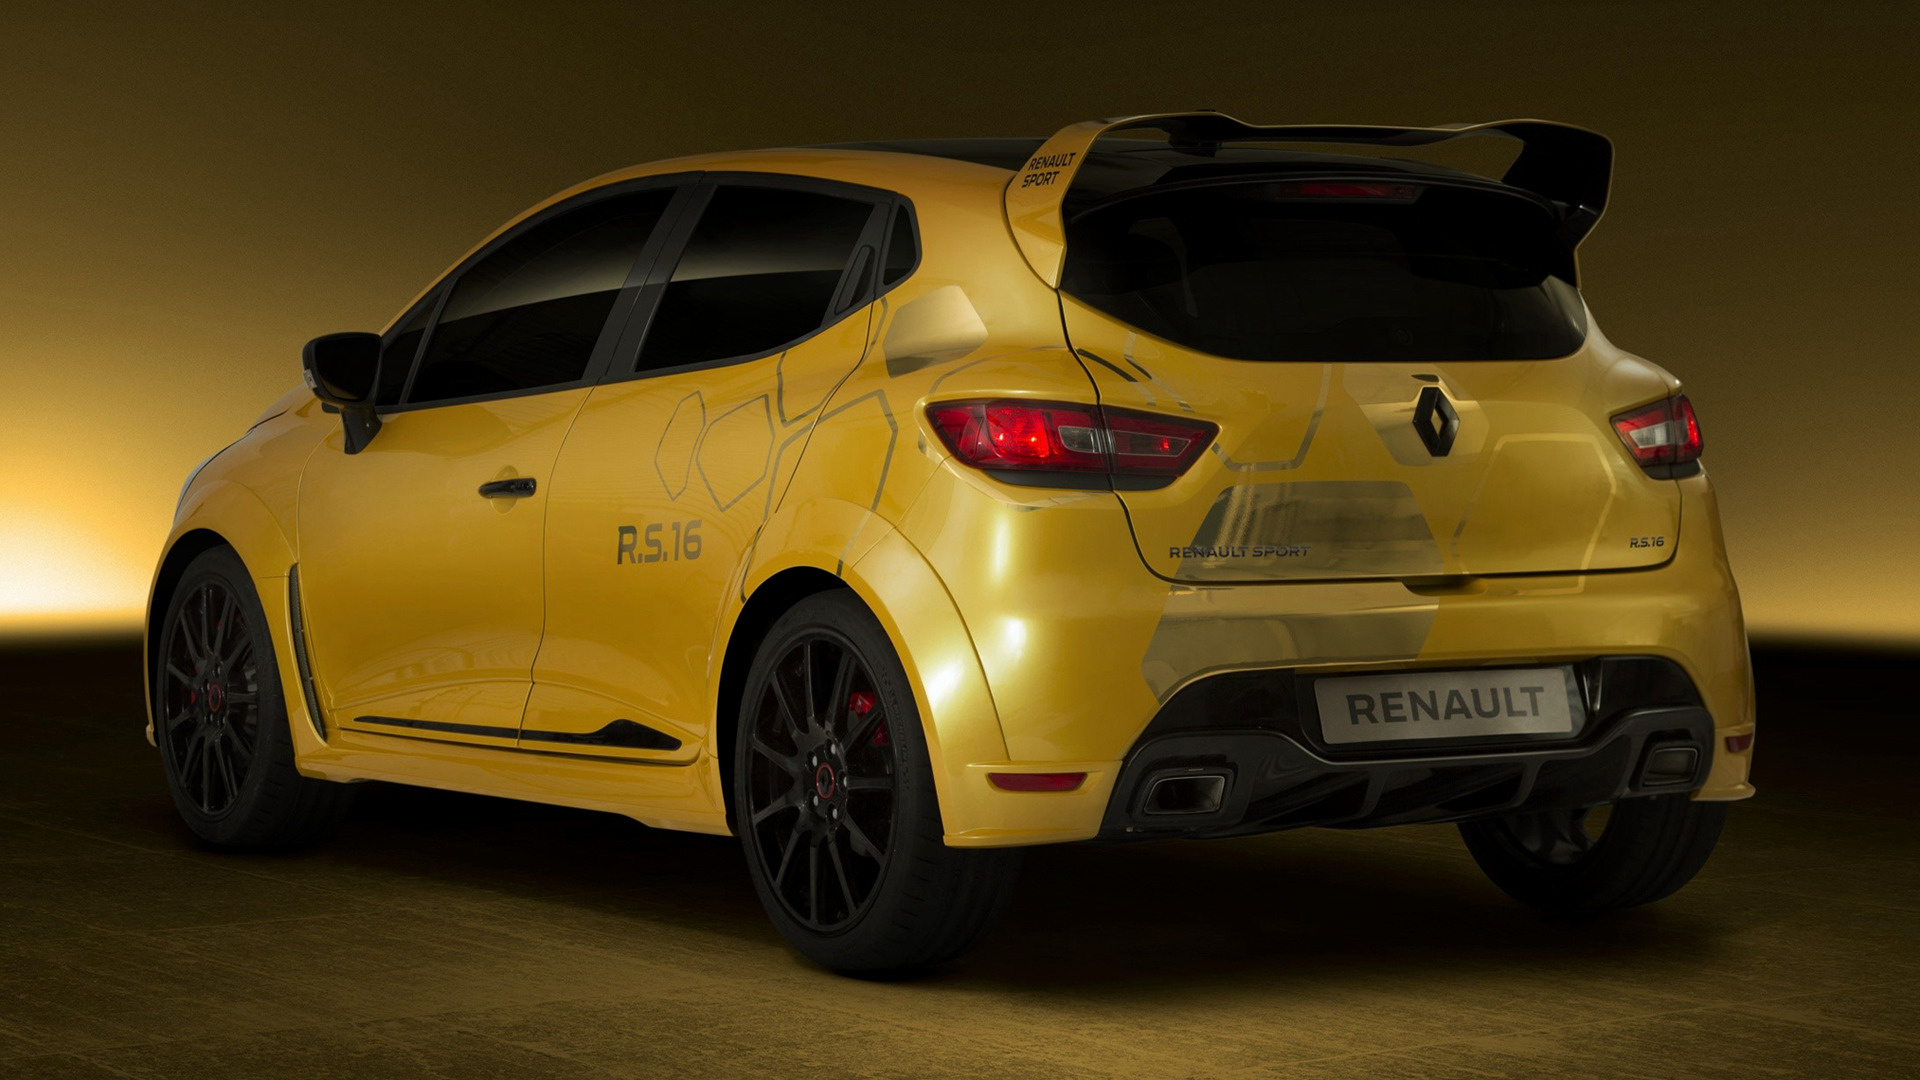 renault clio rs 16 concept 2016 wallpapers and hd images car pixel. Black Bedroom Furniture Sets. Home Design Ideas